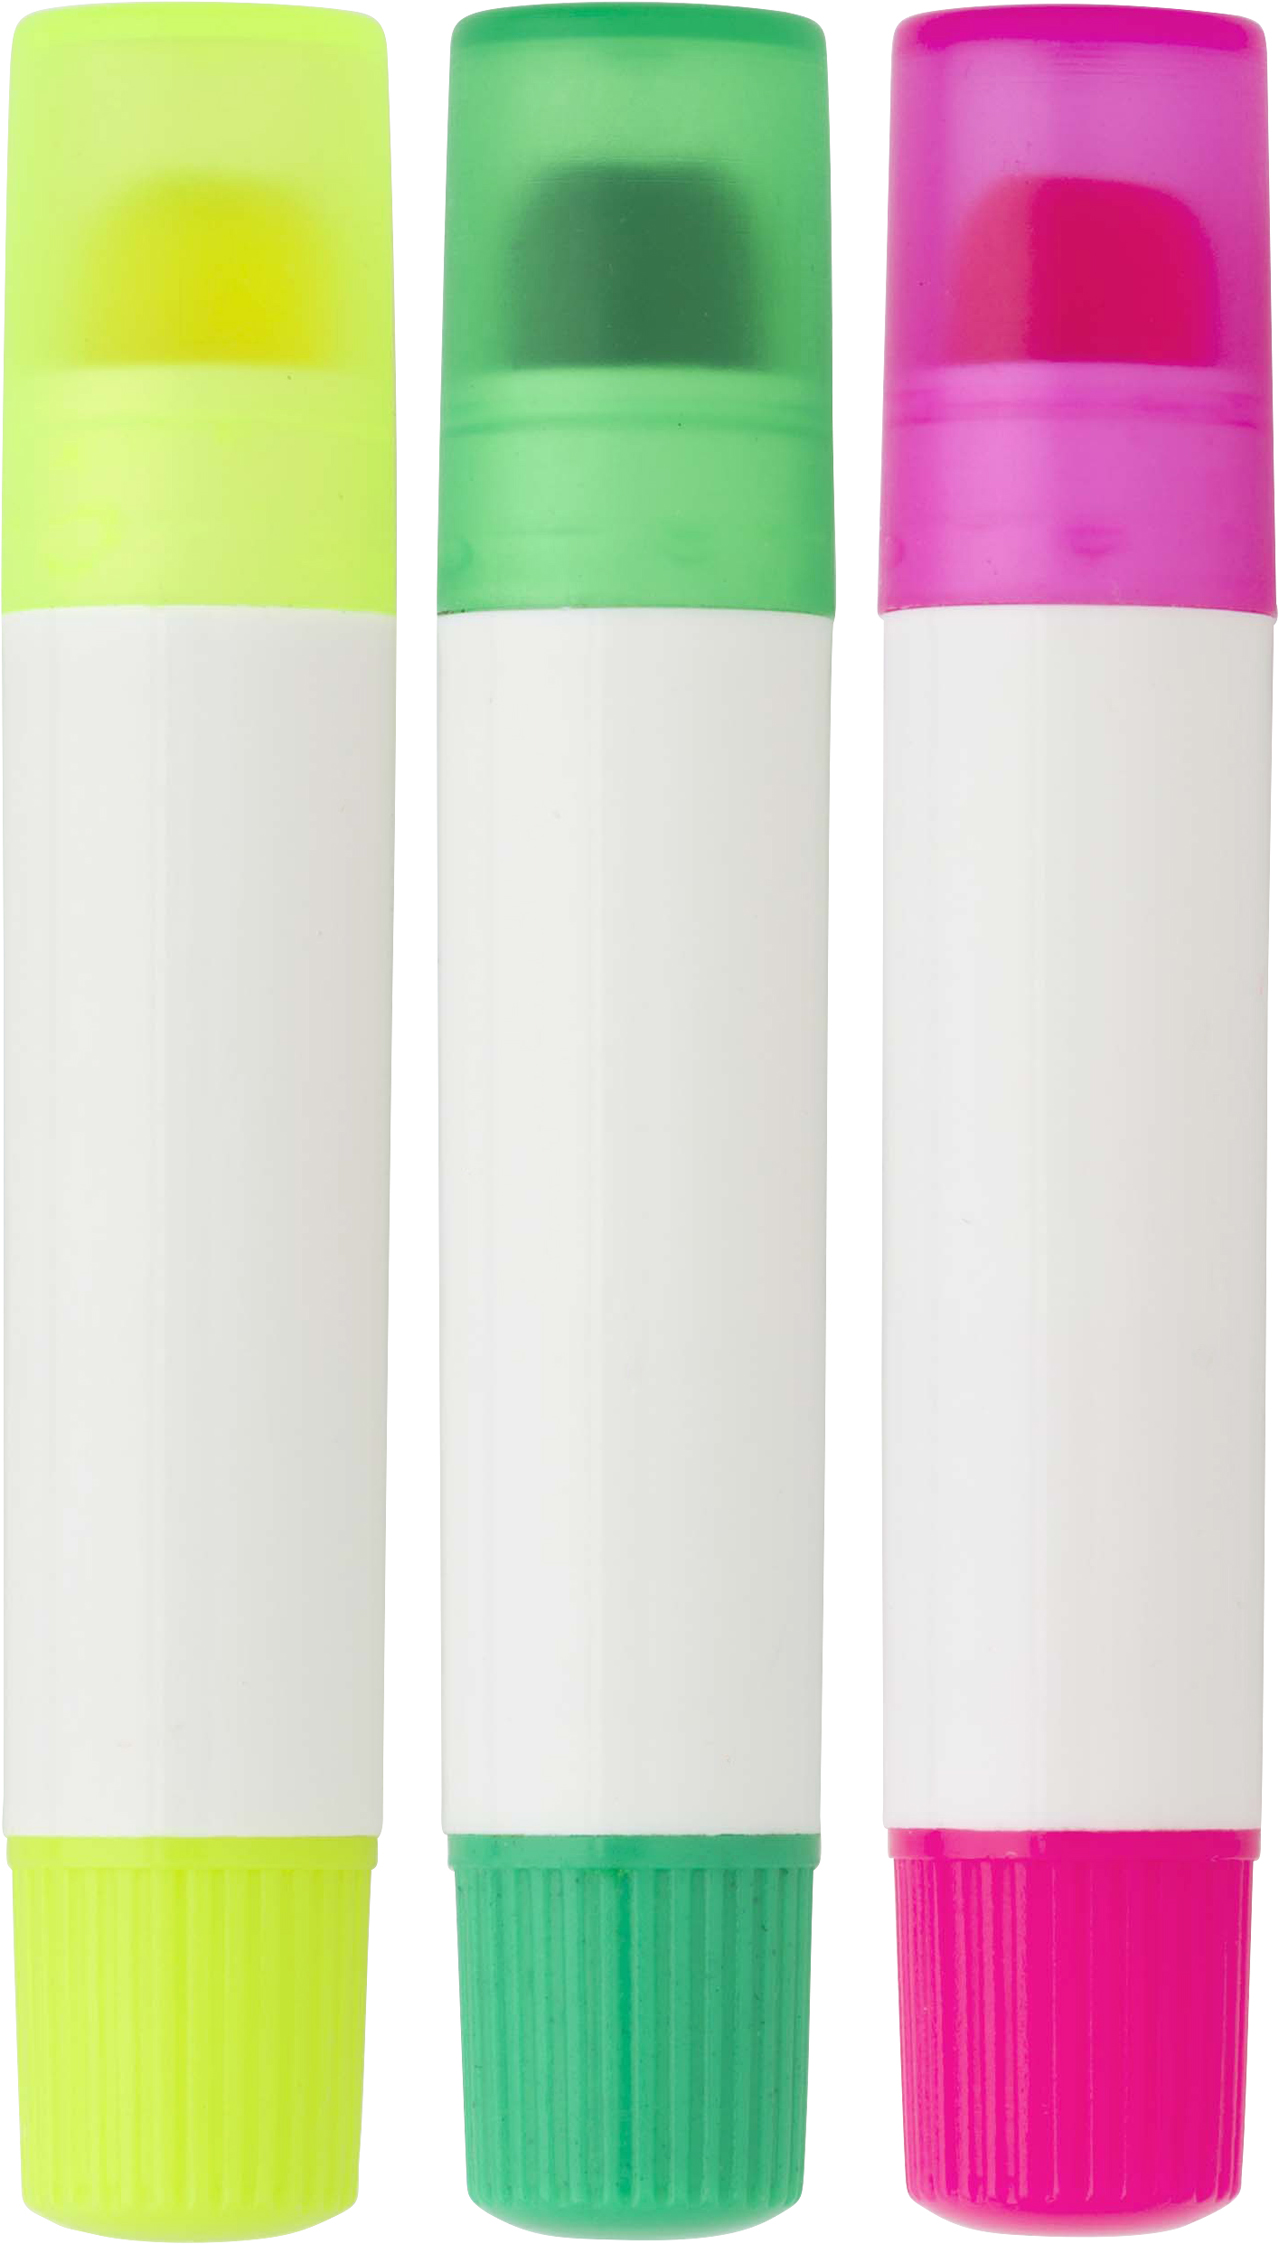 Promotional Set of three gel markers.